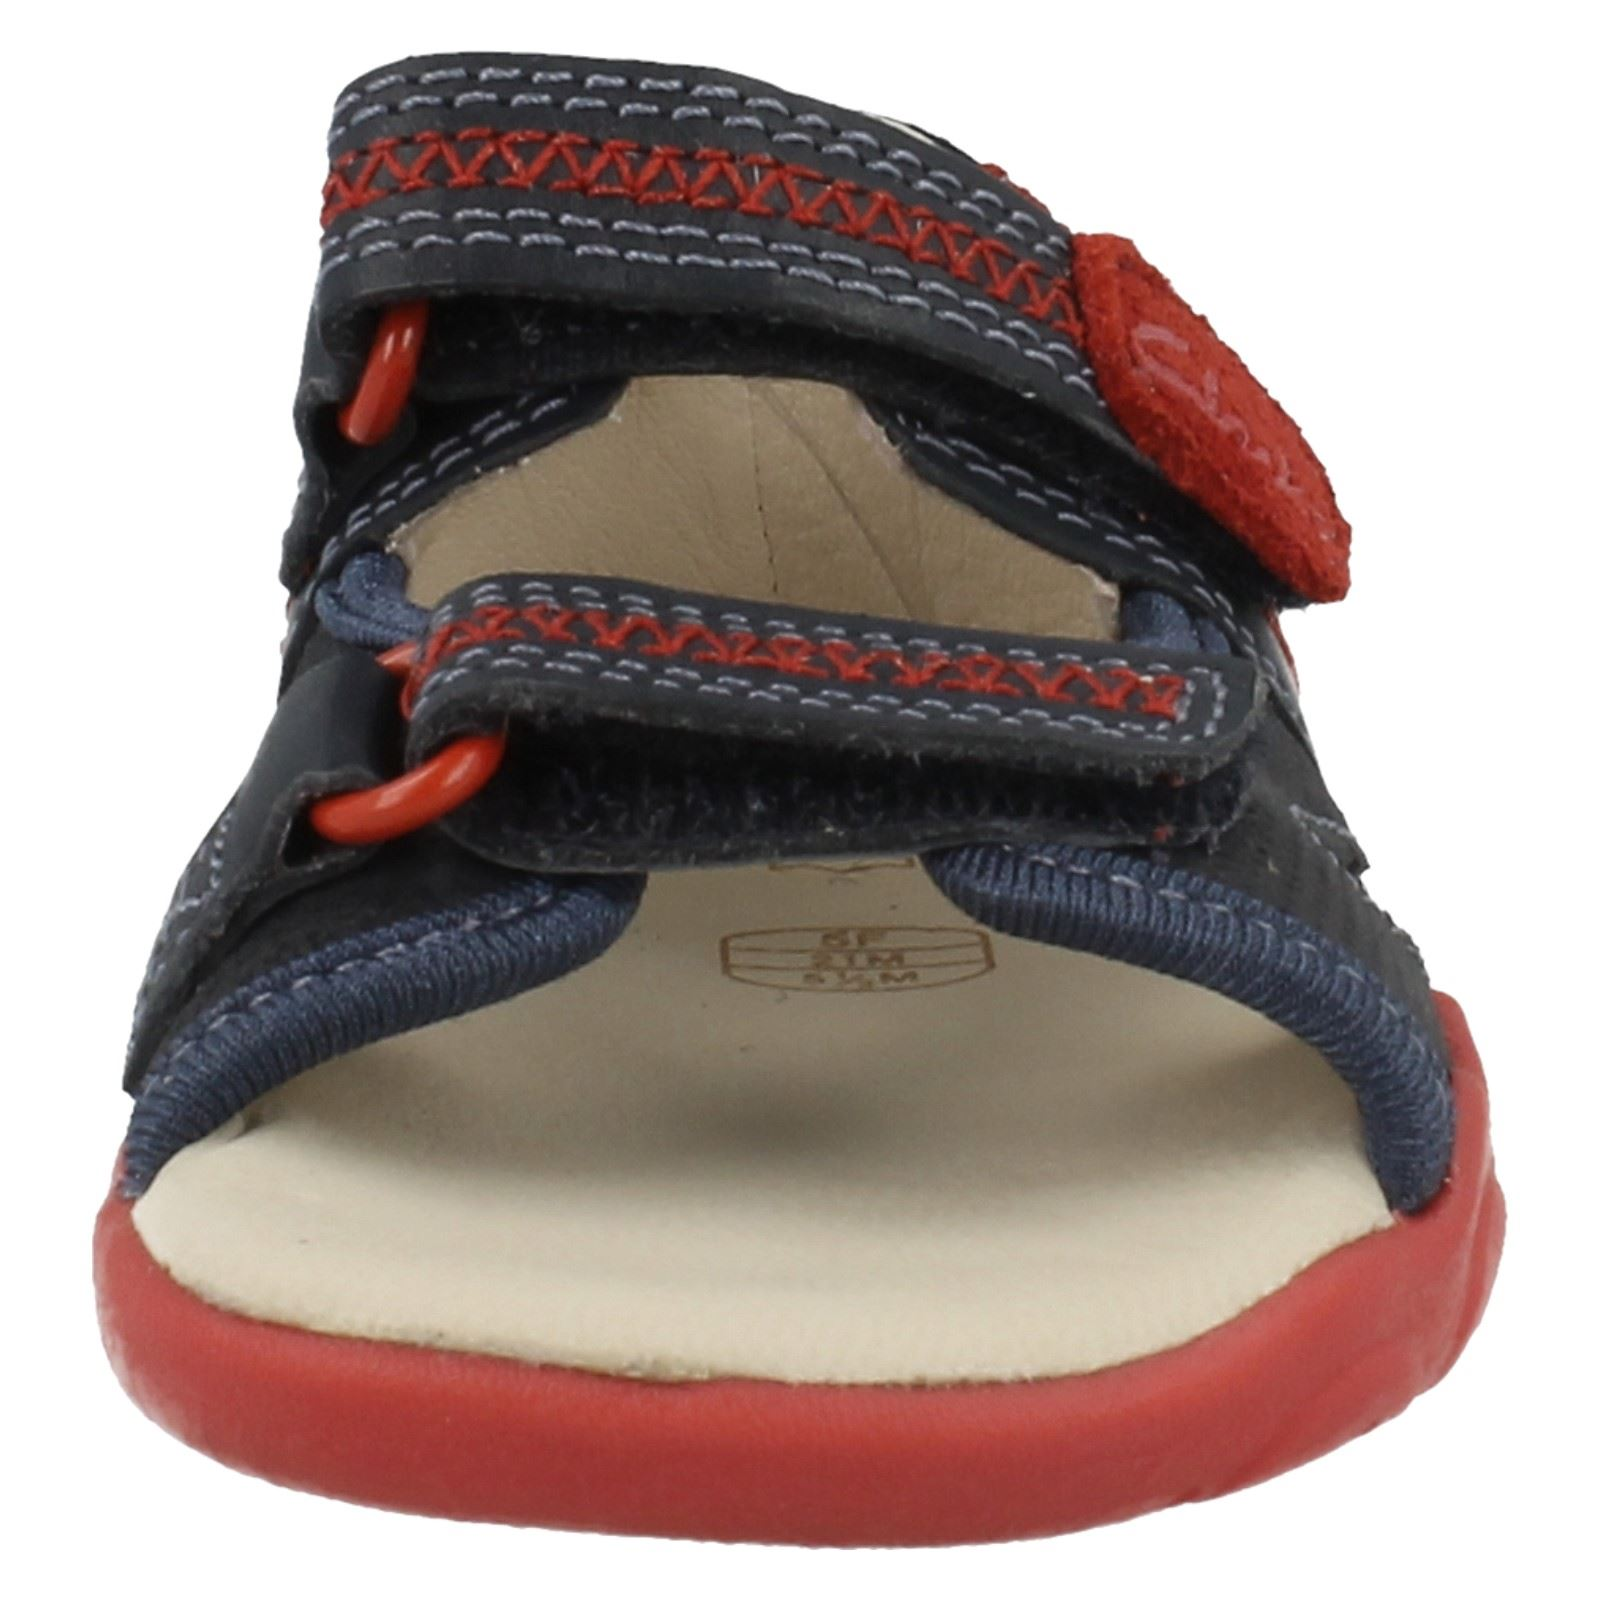 Clarks Boys First Sandals With Riptape Fastening - Softly Rhys